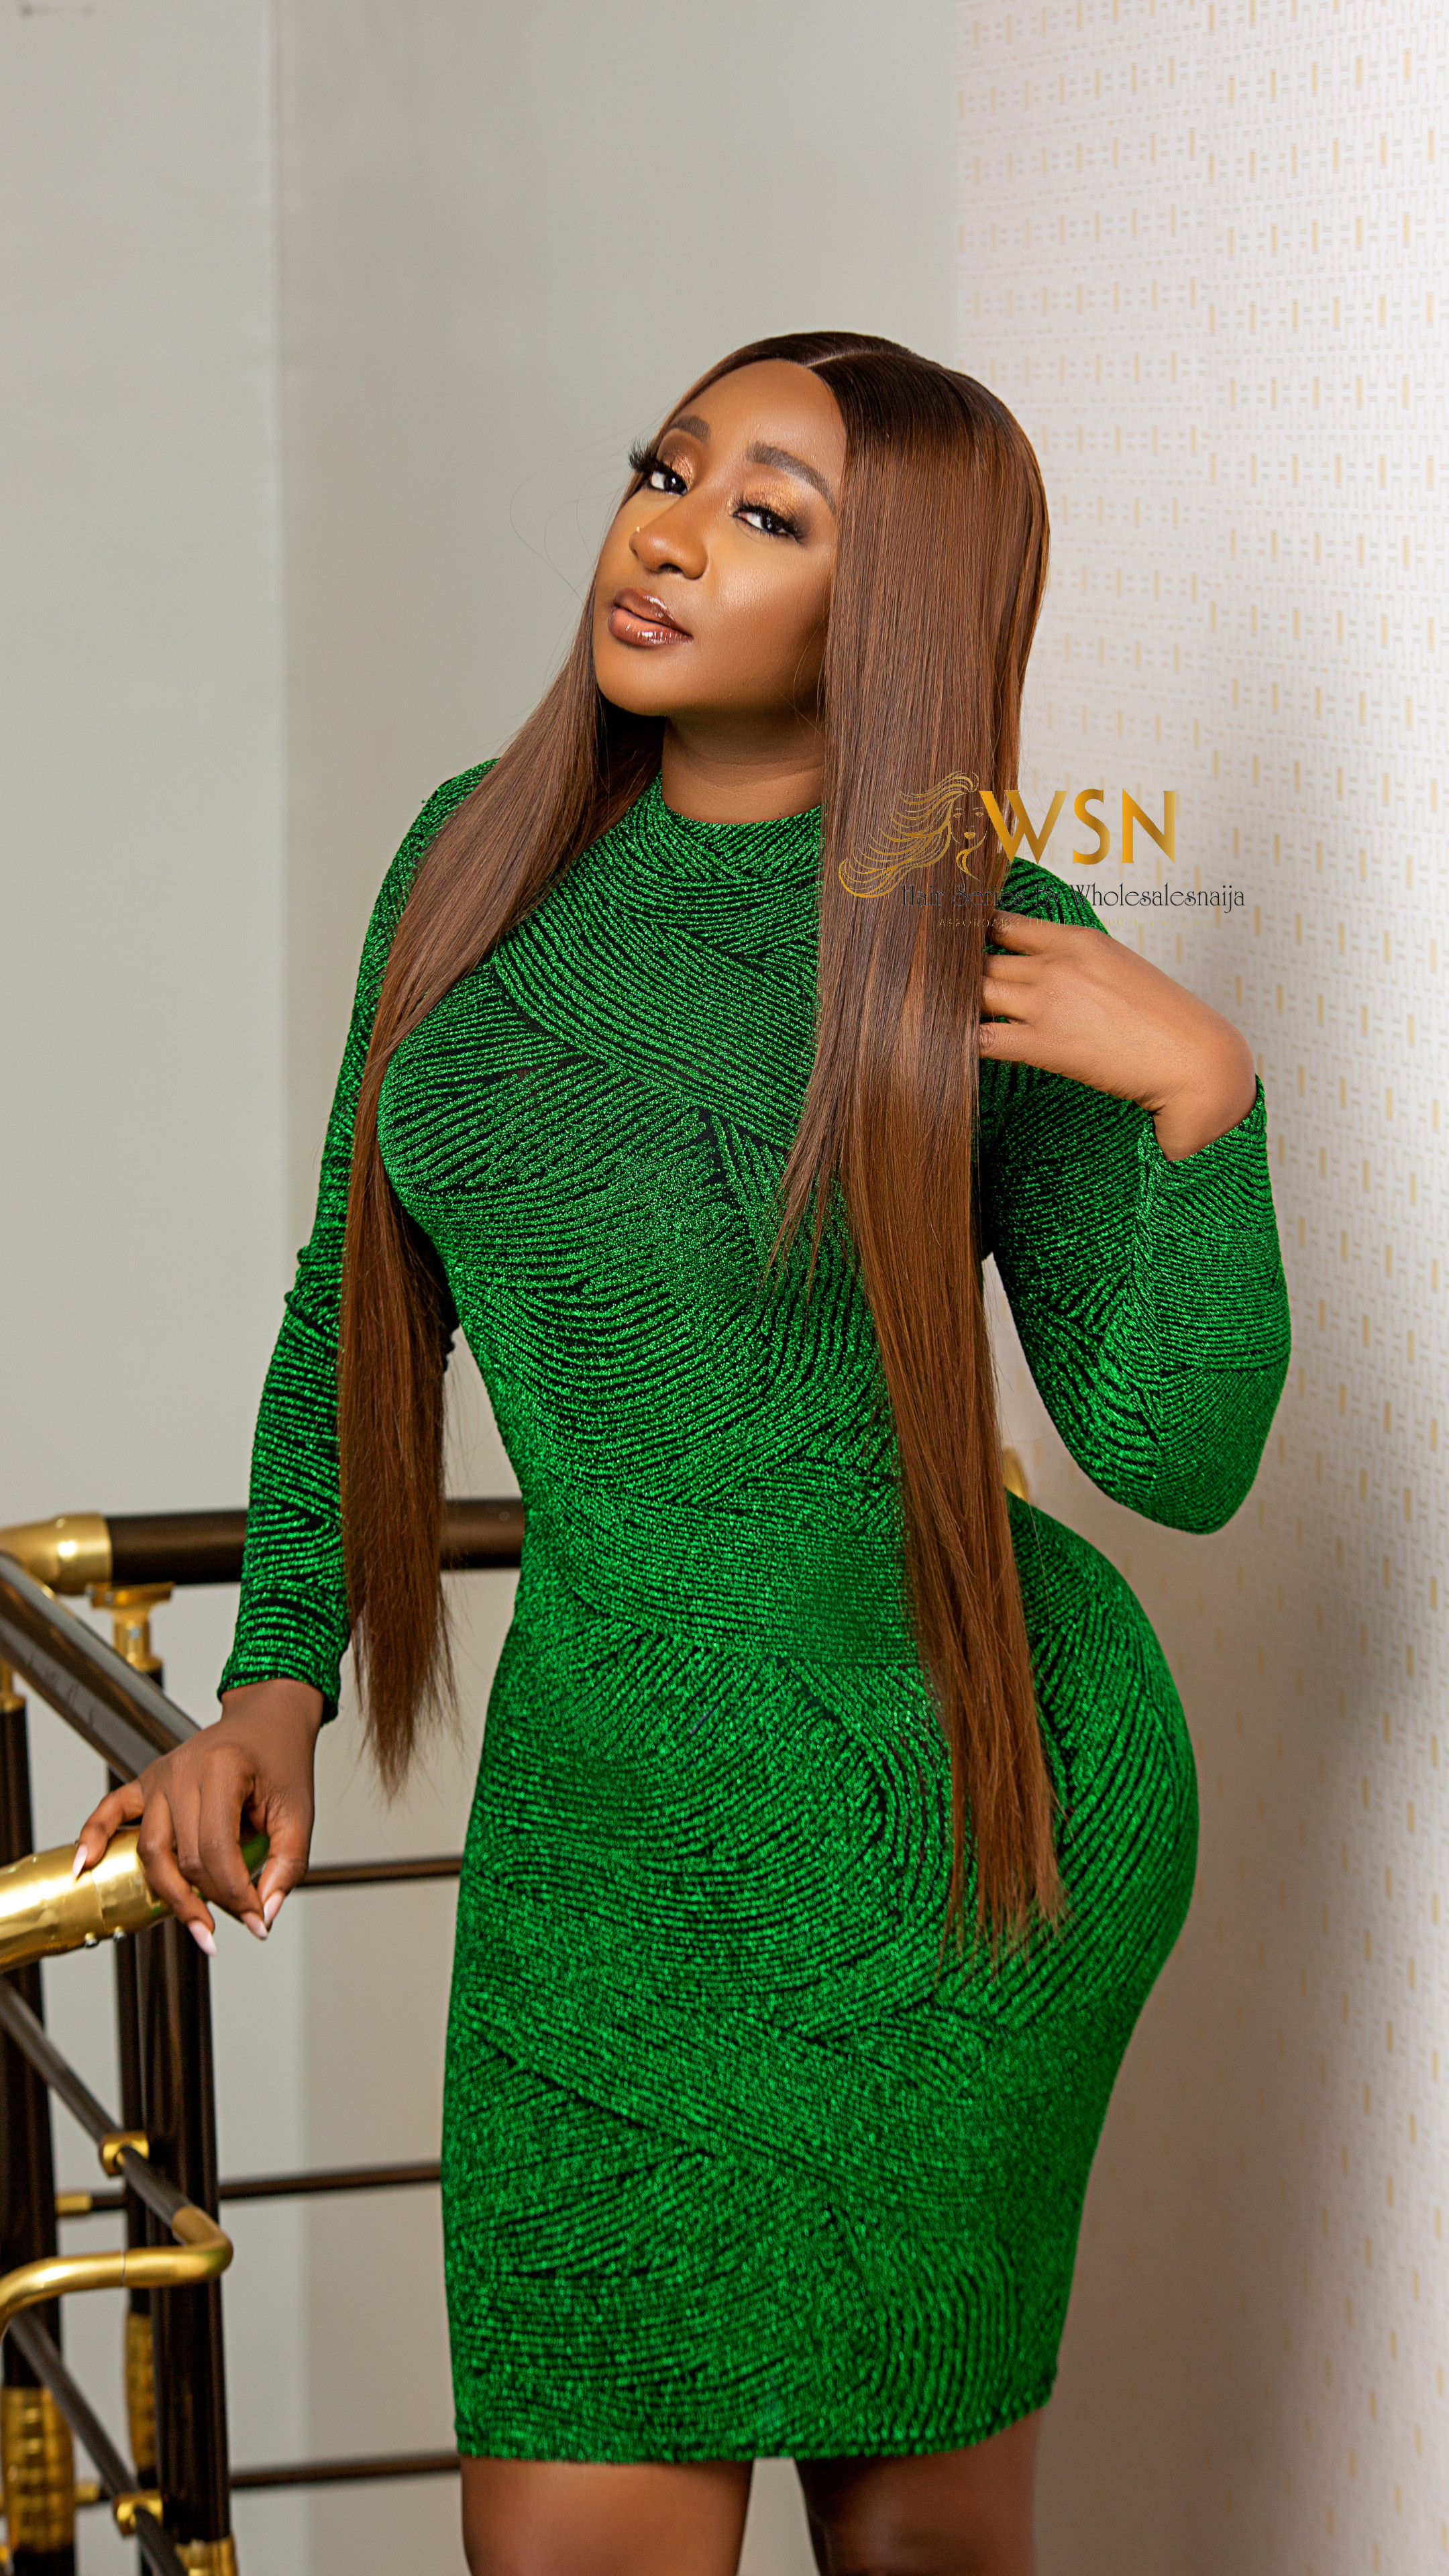 Wholesalesnaija Hair Brand Ambassadors Rocking Different Weaves and Wigs  Pieces from The Brand (photos)